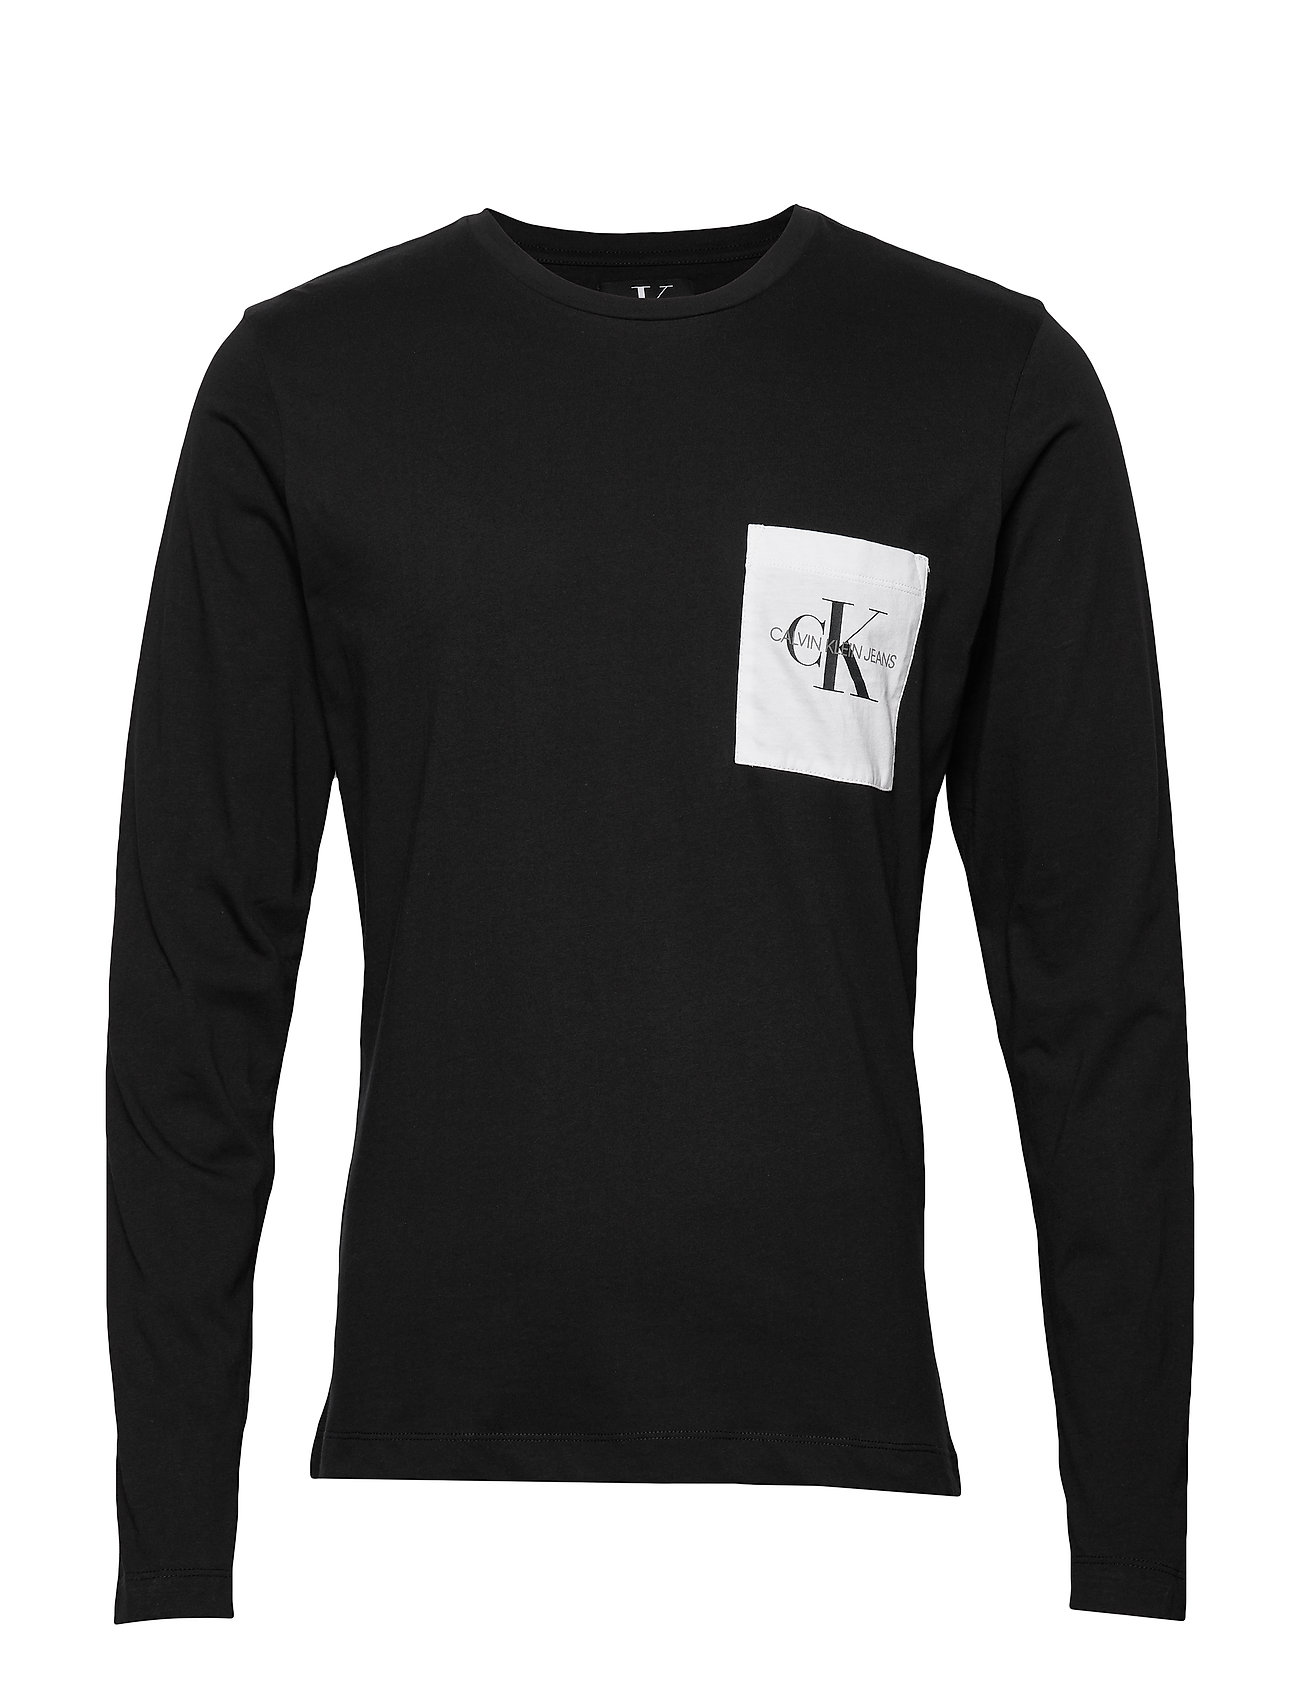 Calvin Klein Jeans MONOGRAM POCKET SLIM LS TEE - CK BLACK / WHITE